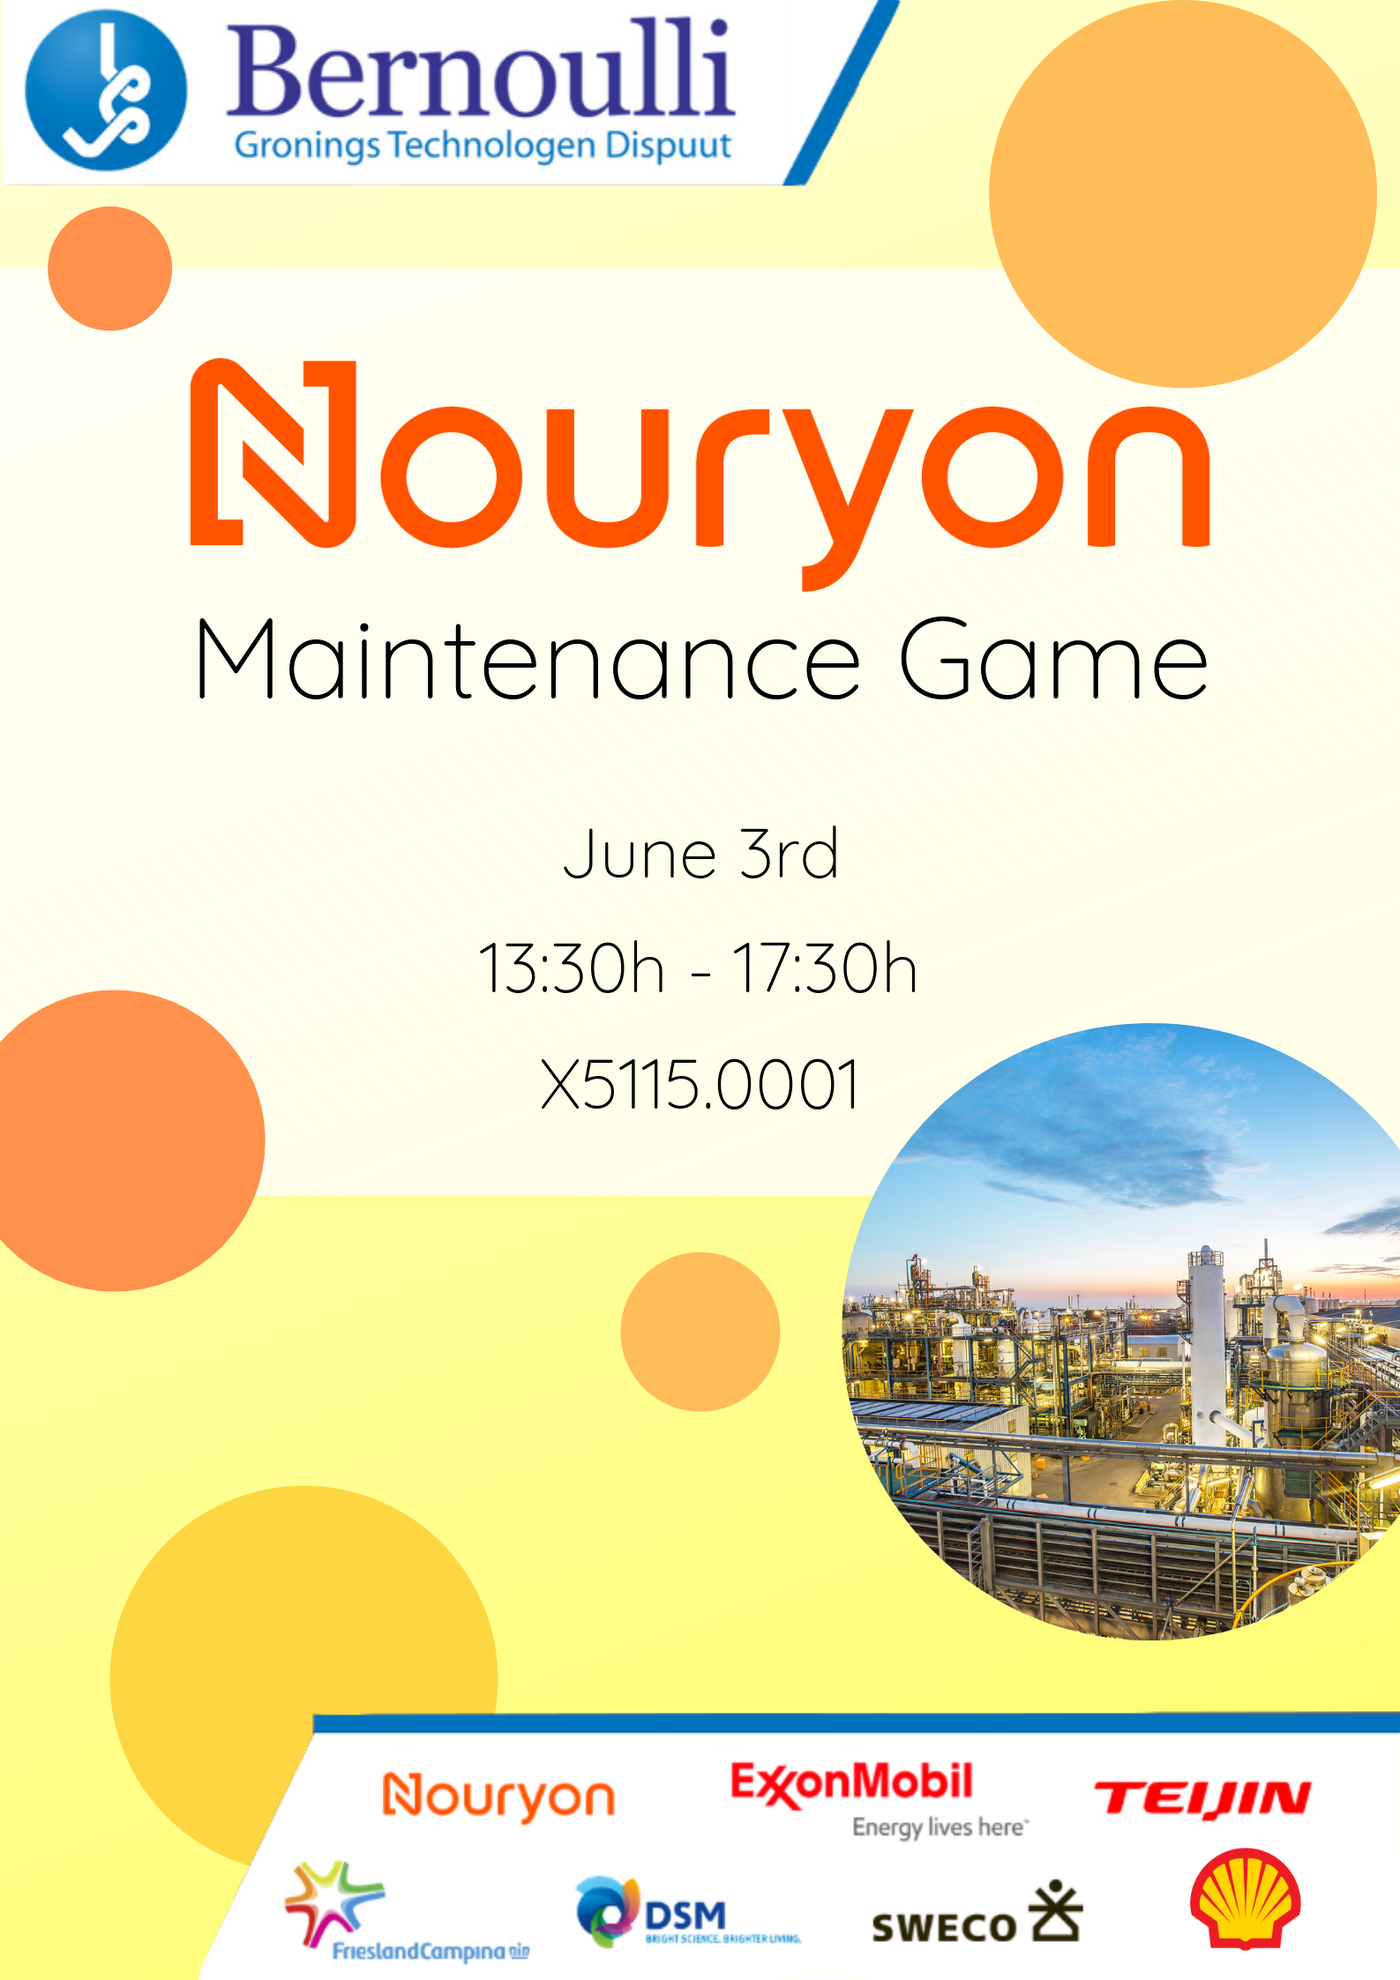 Nouryon Maintenance Game